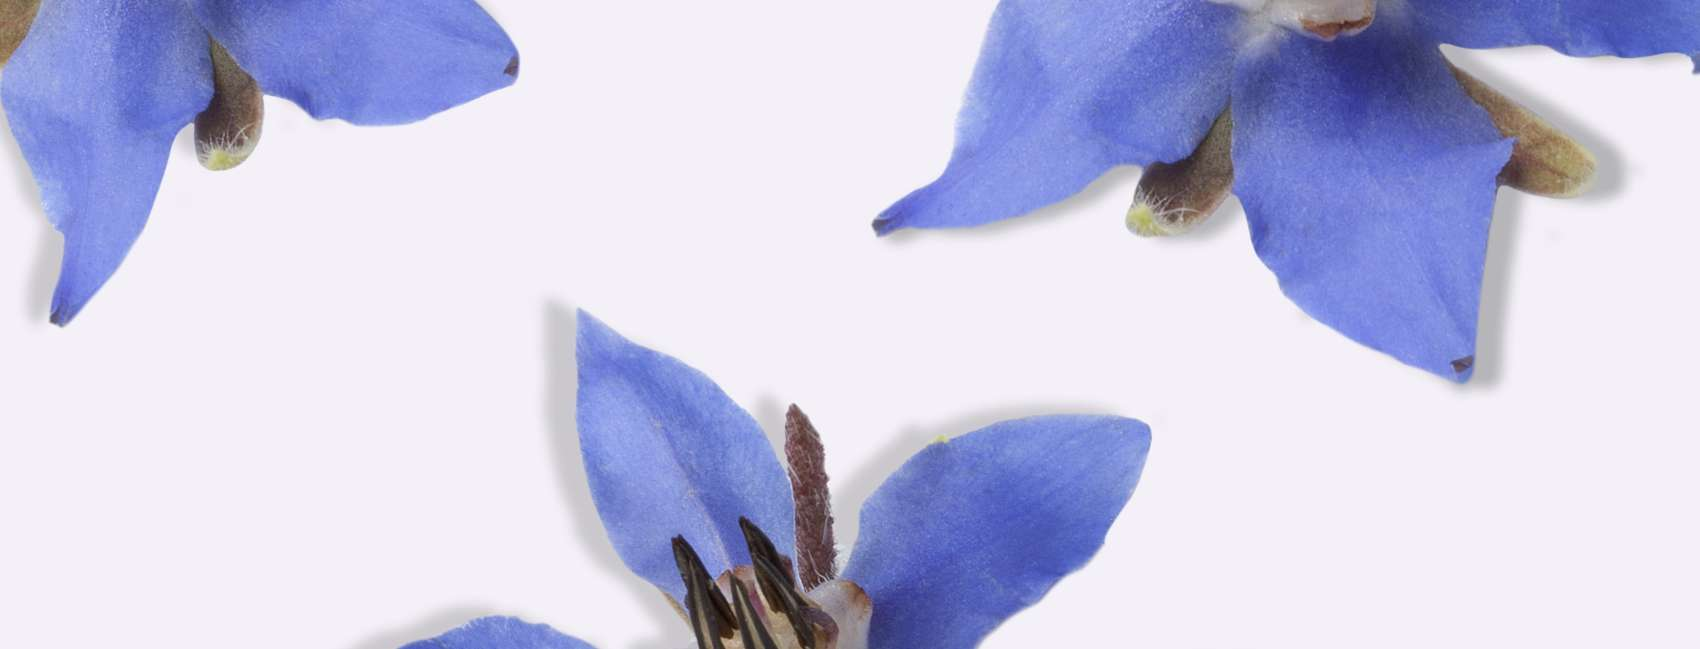 Blue borage flower on grey background